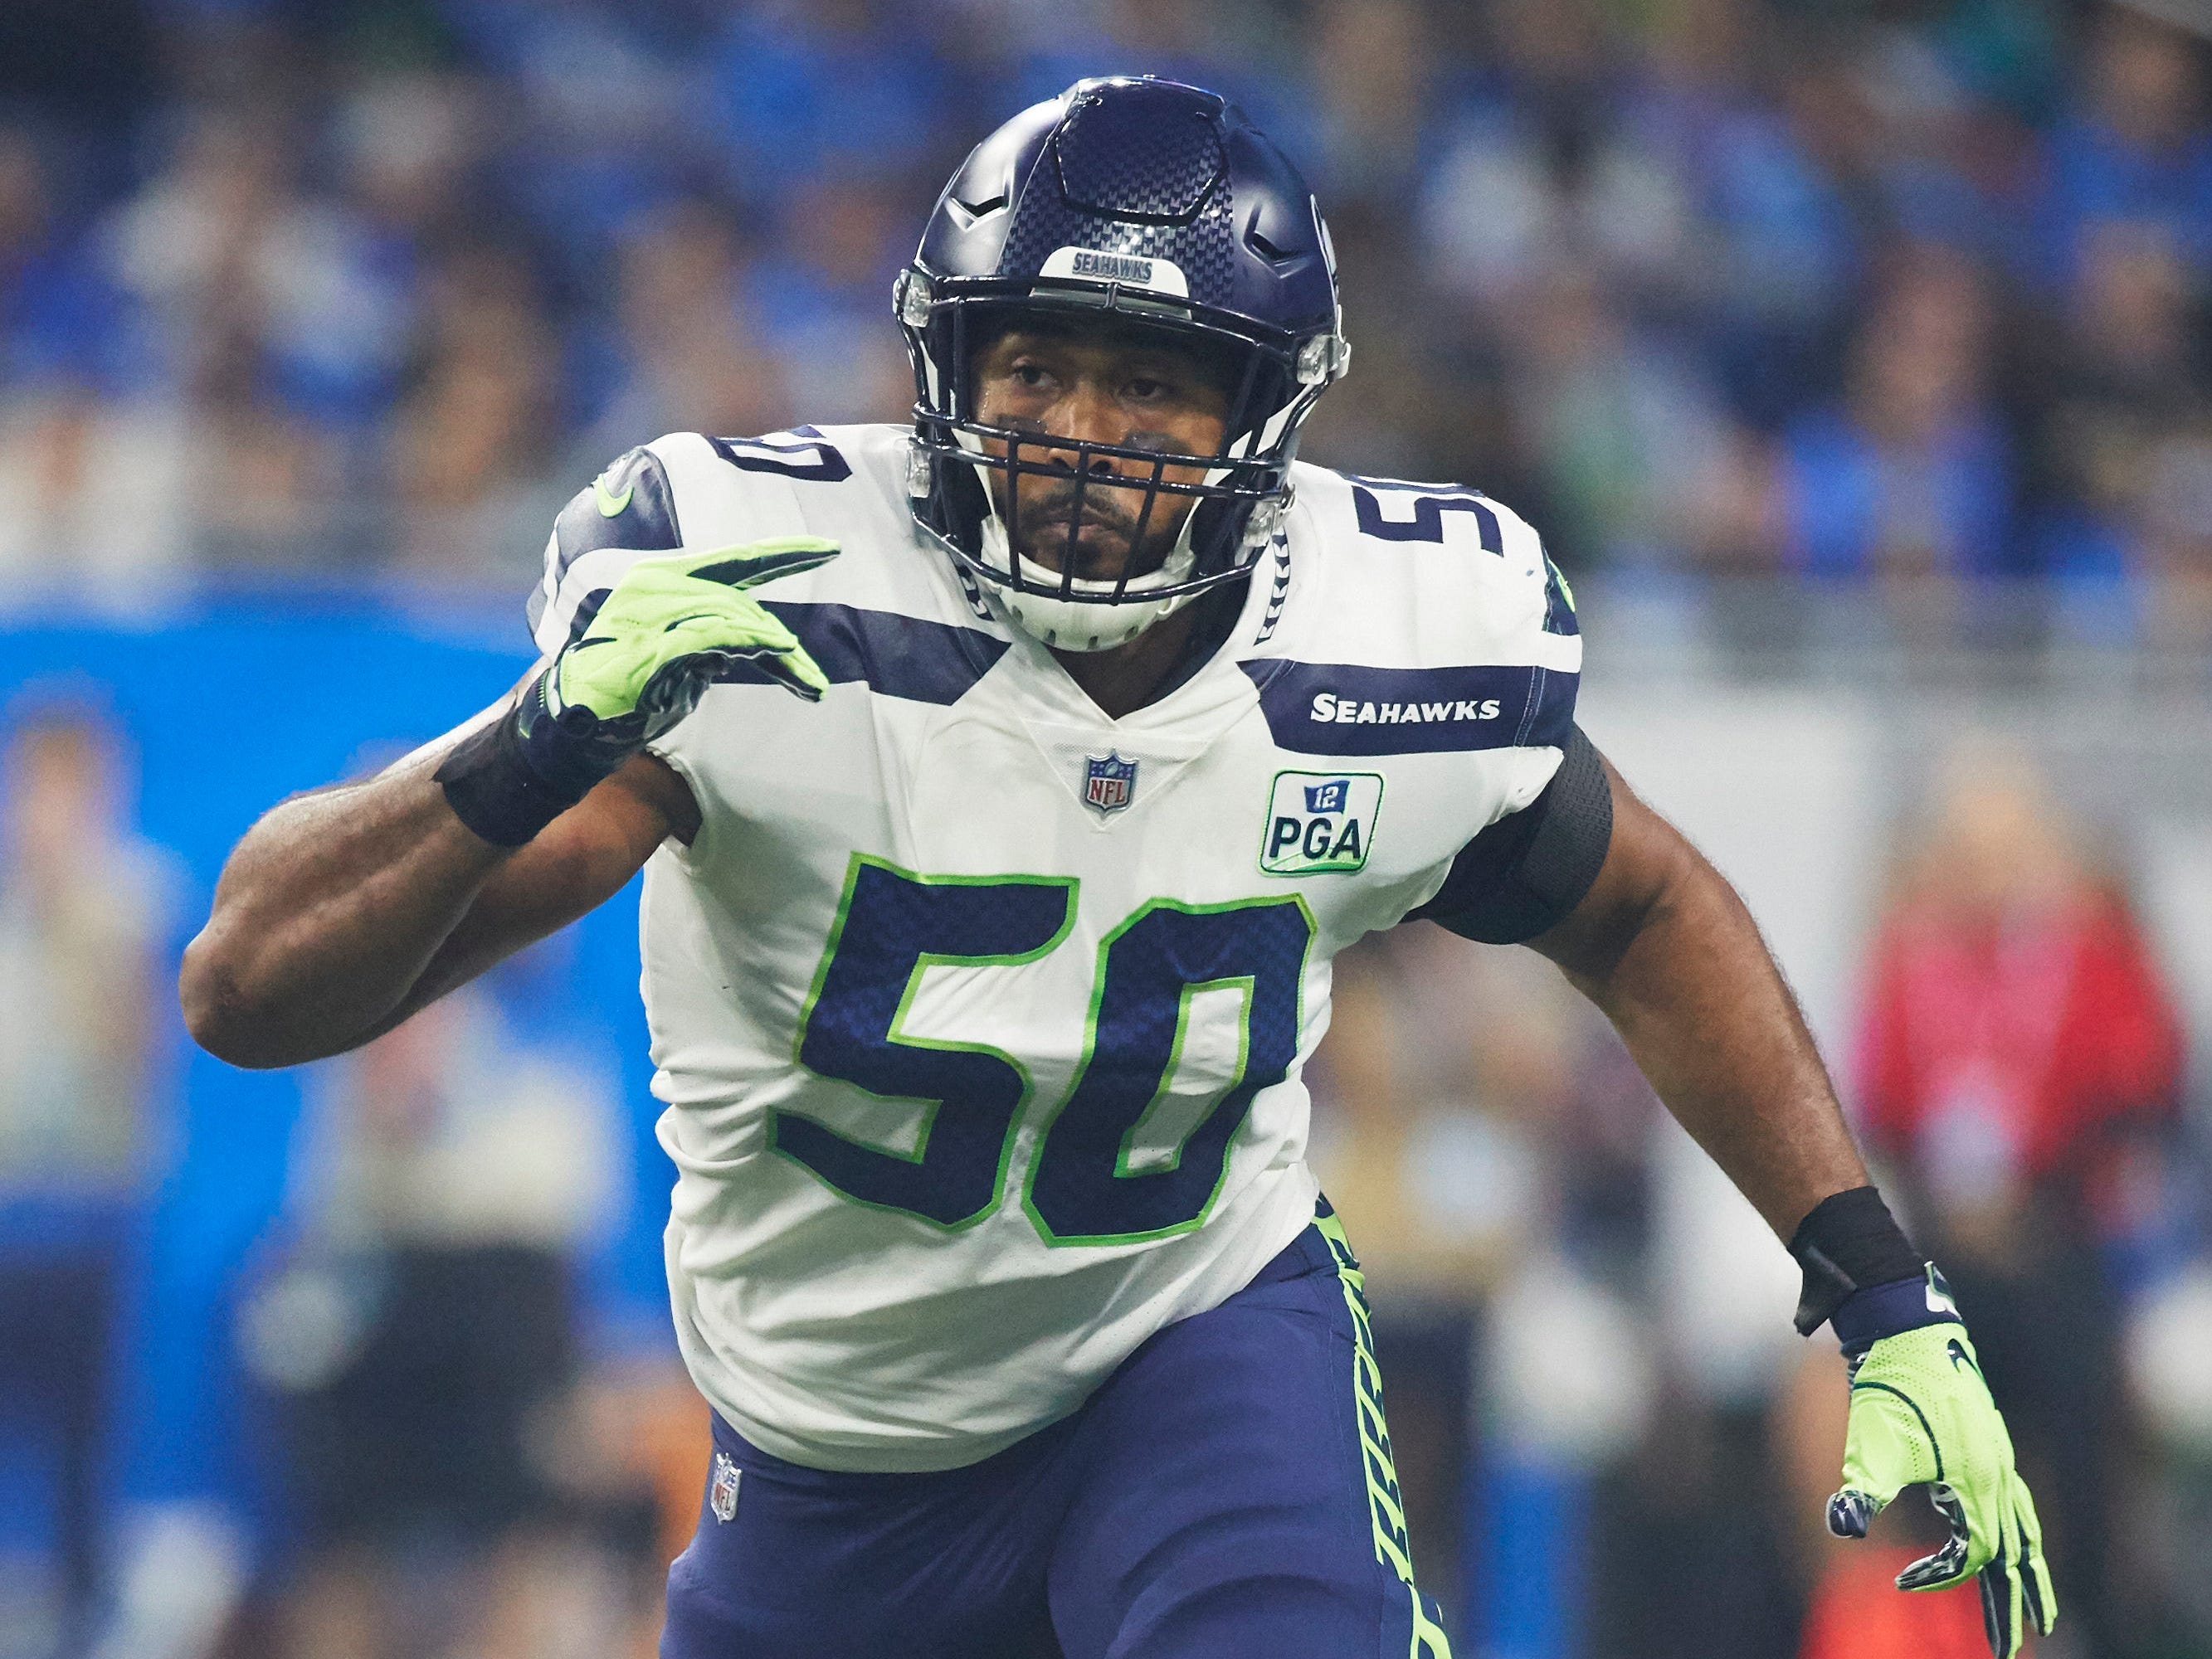 K.J. Wright, LB, Seattle: Wright's biggest knock is his age. He'll be 30 by the start of training camp. But the highly instinctual linebacker would provide a significant upgrade to Detroit's second level. He missed significant time last season with a knee injury, which he aggravated late in the year. That will need to pass medical testing, but four straight seasons of 100-plus tackles before last speak to his productivity.